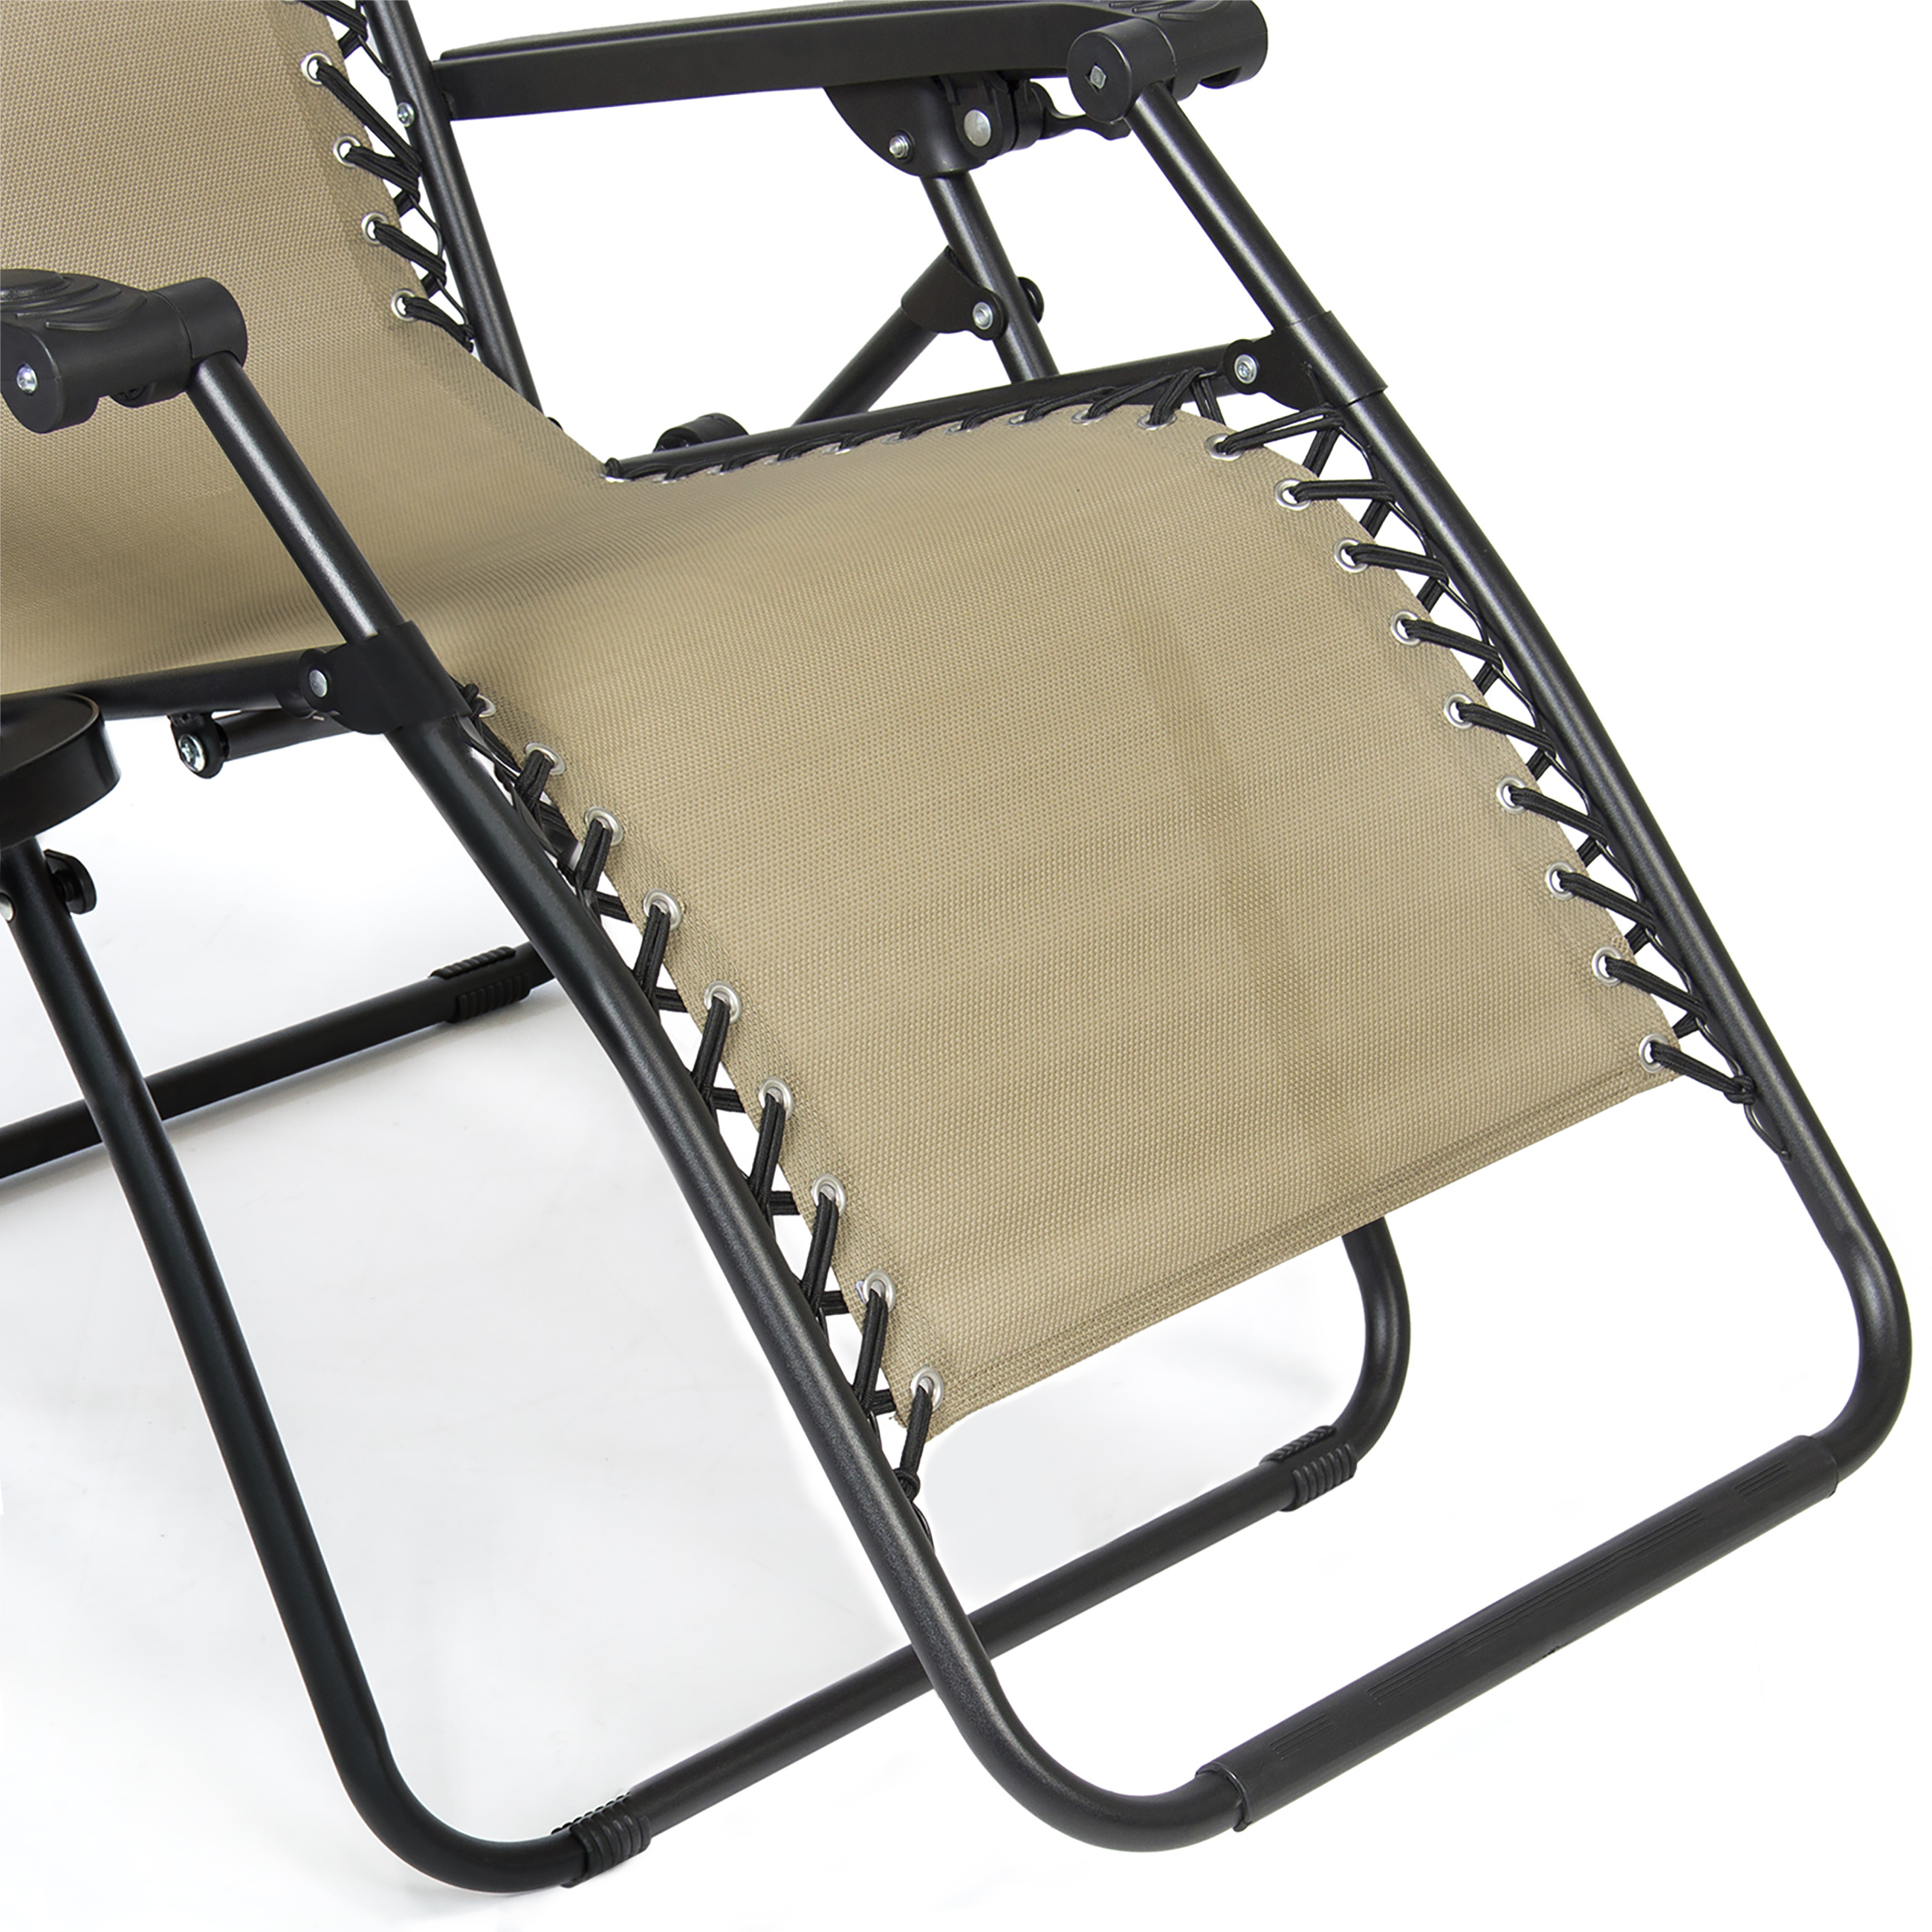 BCP-Folding-Zero-Gravity-Recliner-Lounge-Chair-w-Canopy-Cup-Holder thumbnail 13